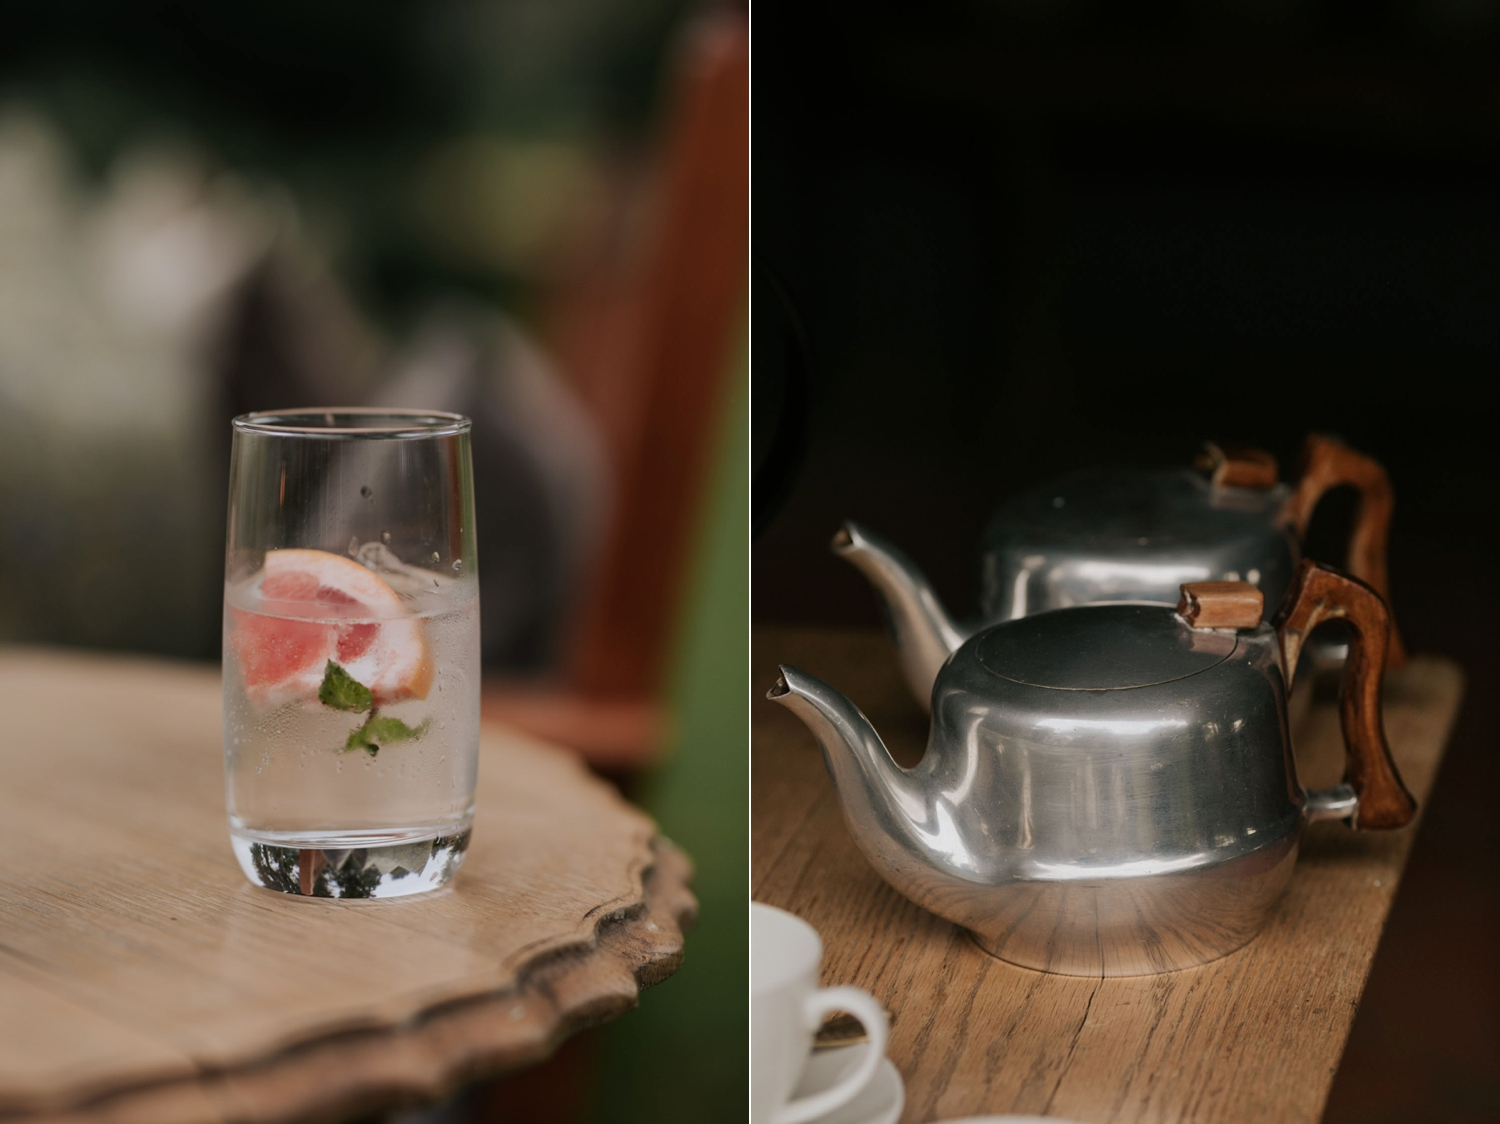 Refreshments for cocktail hour at a wedding ceremony. Gin and tonic station with grapefruit and other garnishes and a vintage pot of tea.